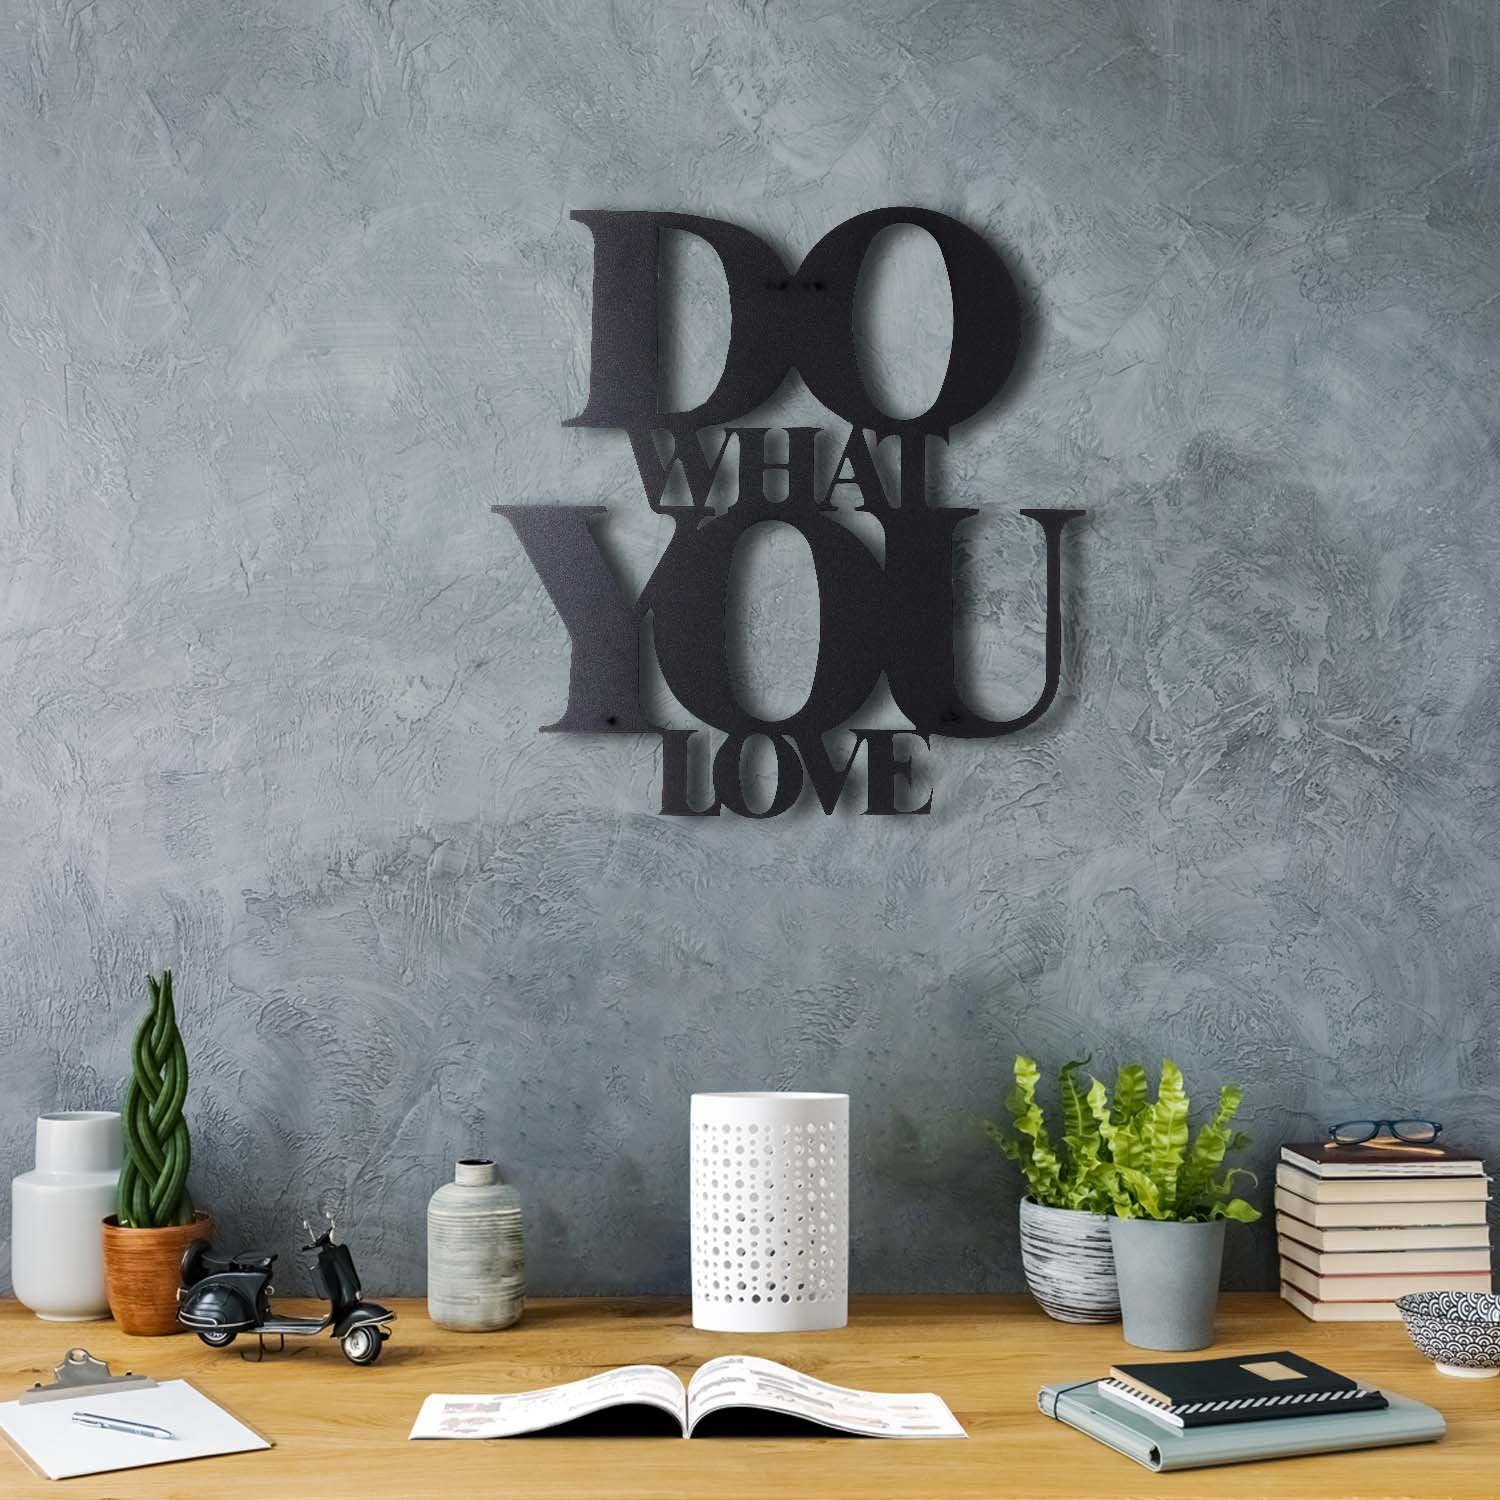 Bystag metal dekoratif duvar aksesuarı do what you love- Bystag metal wall art-wall art-wall decor-metal wall decor-do wht you love